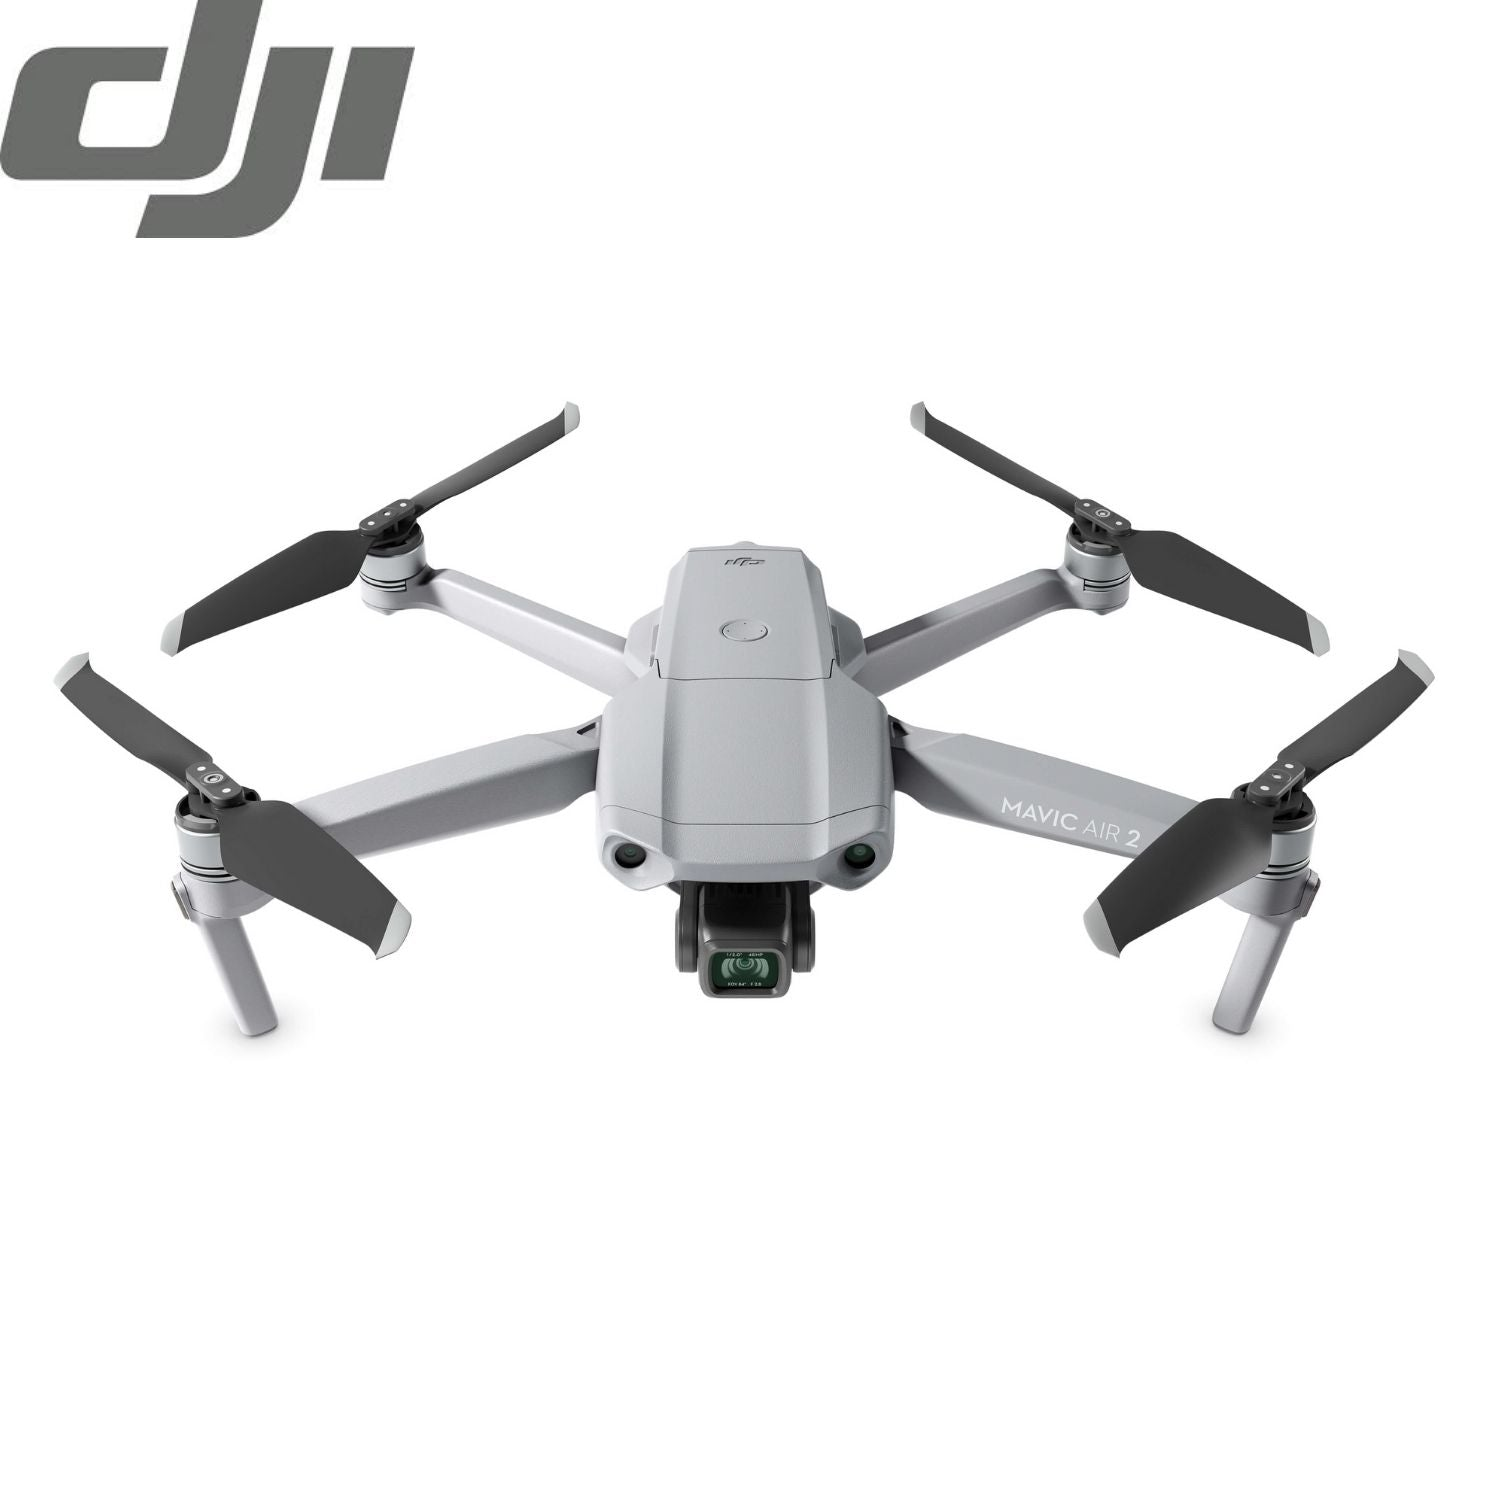 DJI Camera Drone: Mavic Air 2